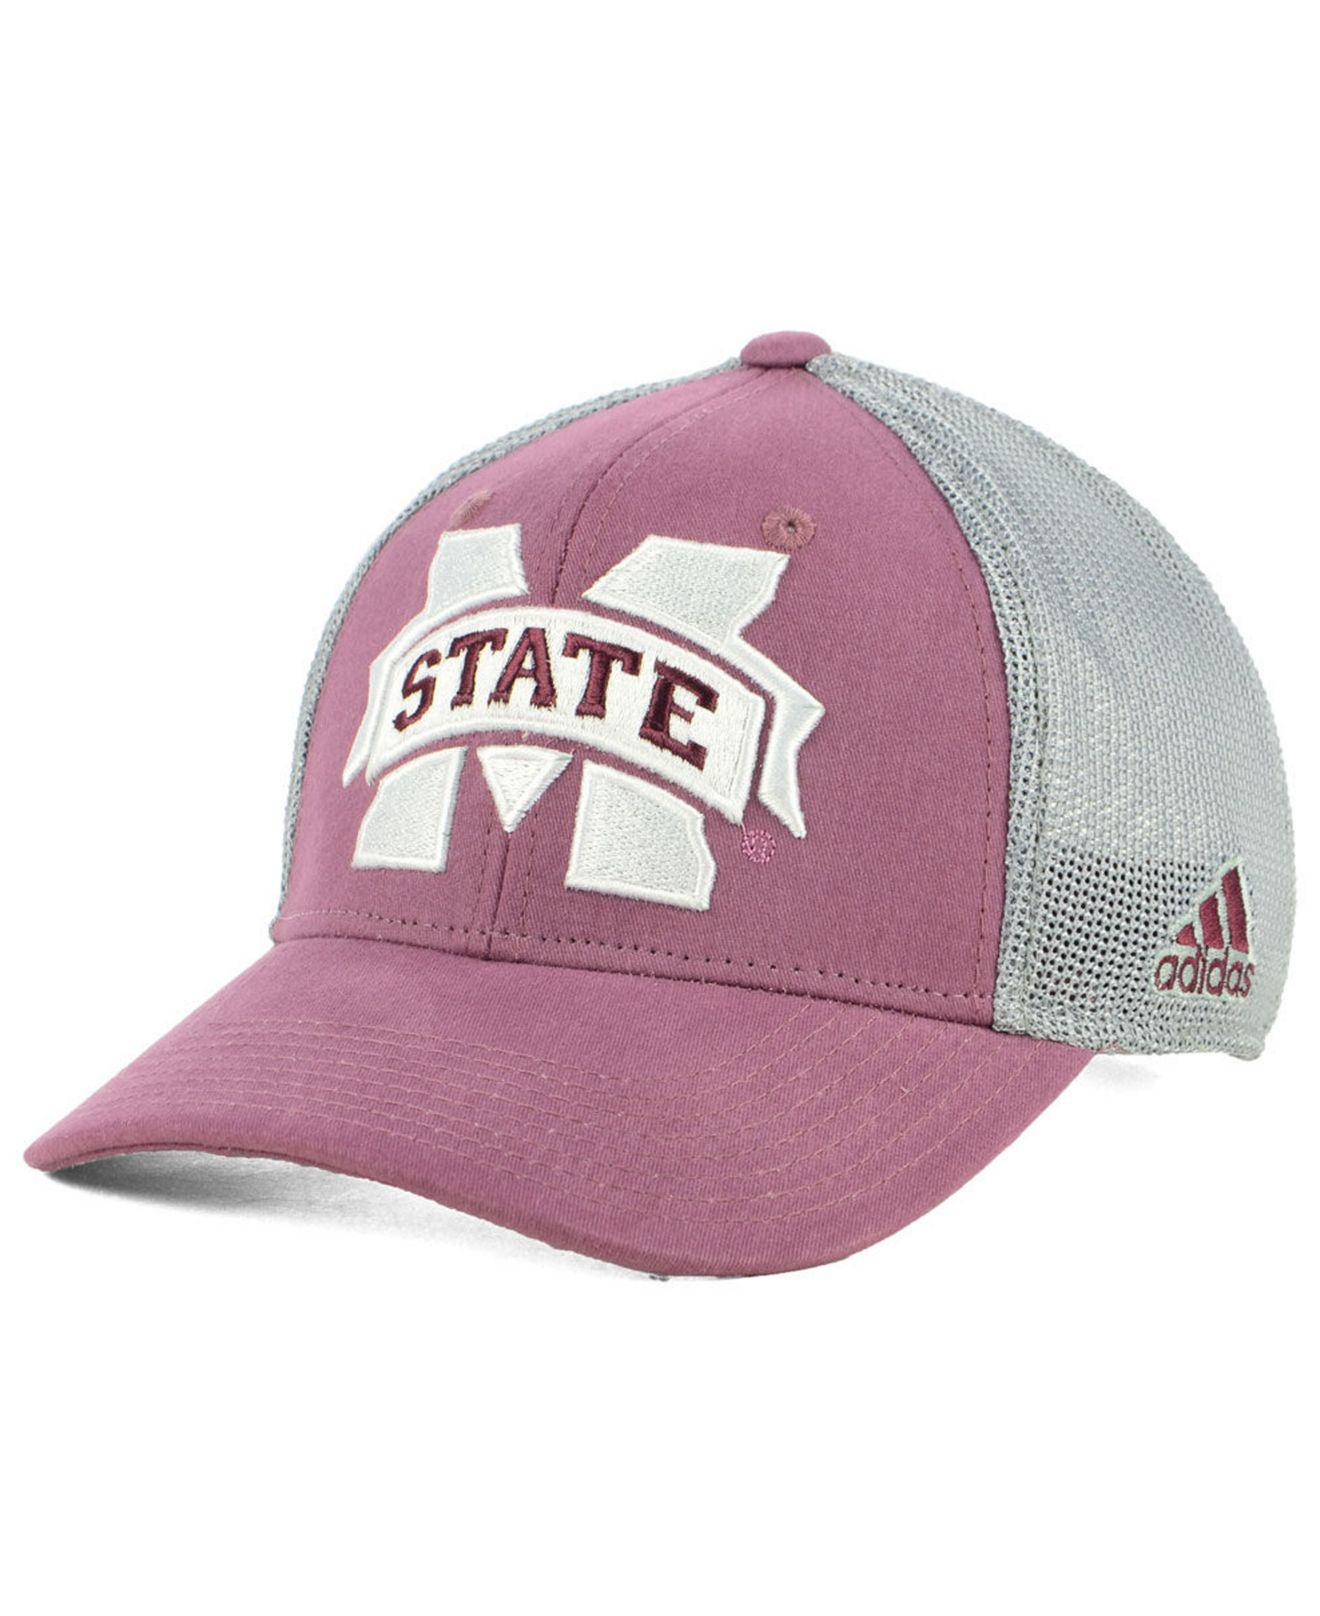 Lyst - Adidas Mississippi State Bulldogs Faded Flex Stretch Fitted ... bae493cc2e17